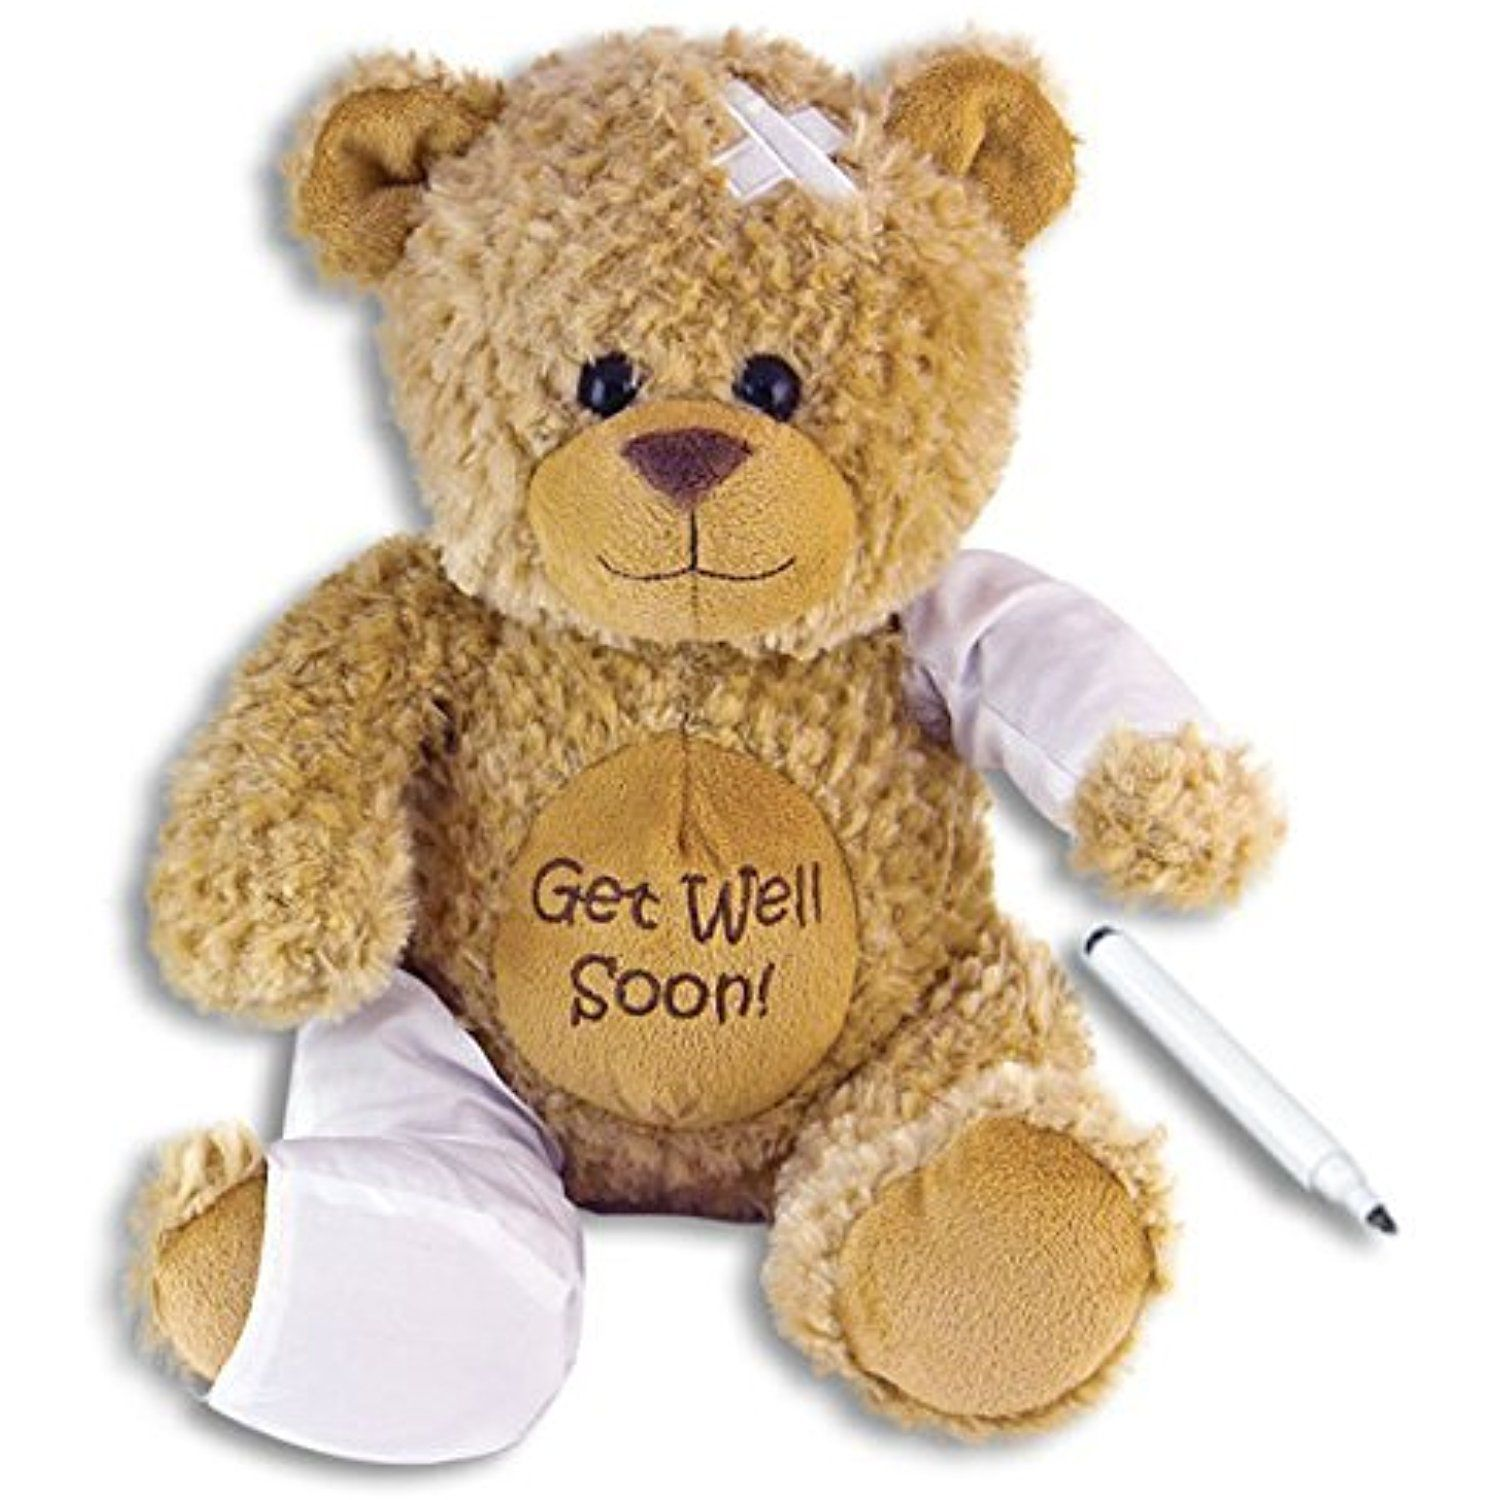 15 Plush Get Well Soon Teddy Bear W Cast For Autograph Speedy Recovery Gift For Hospitalized Ch Teddy Bear Stuffed Animal Get Well Gifts Kids Birthday Gifts